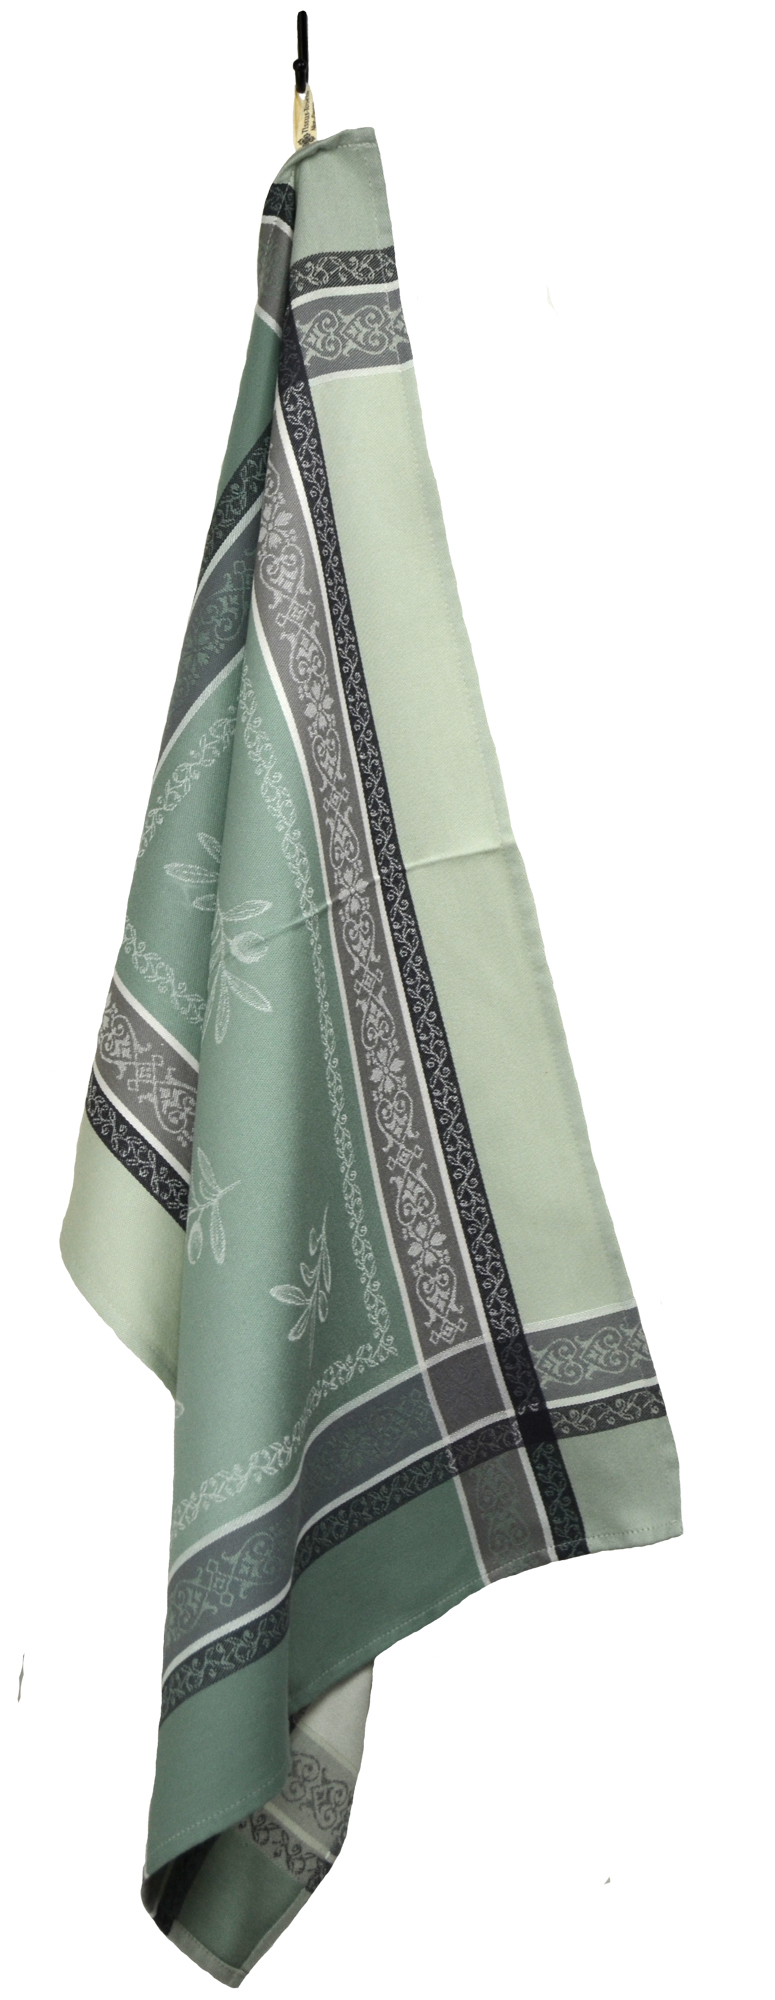 """Olives French Jacquard Tea Towel - Collection """"Olivia"""" Green, Size: 21 x 29 inches, Price CAN$19.95"""